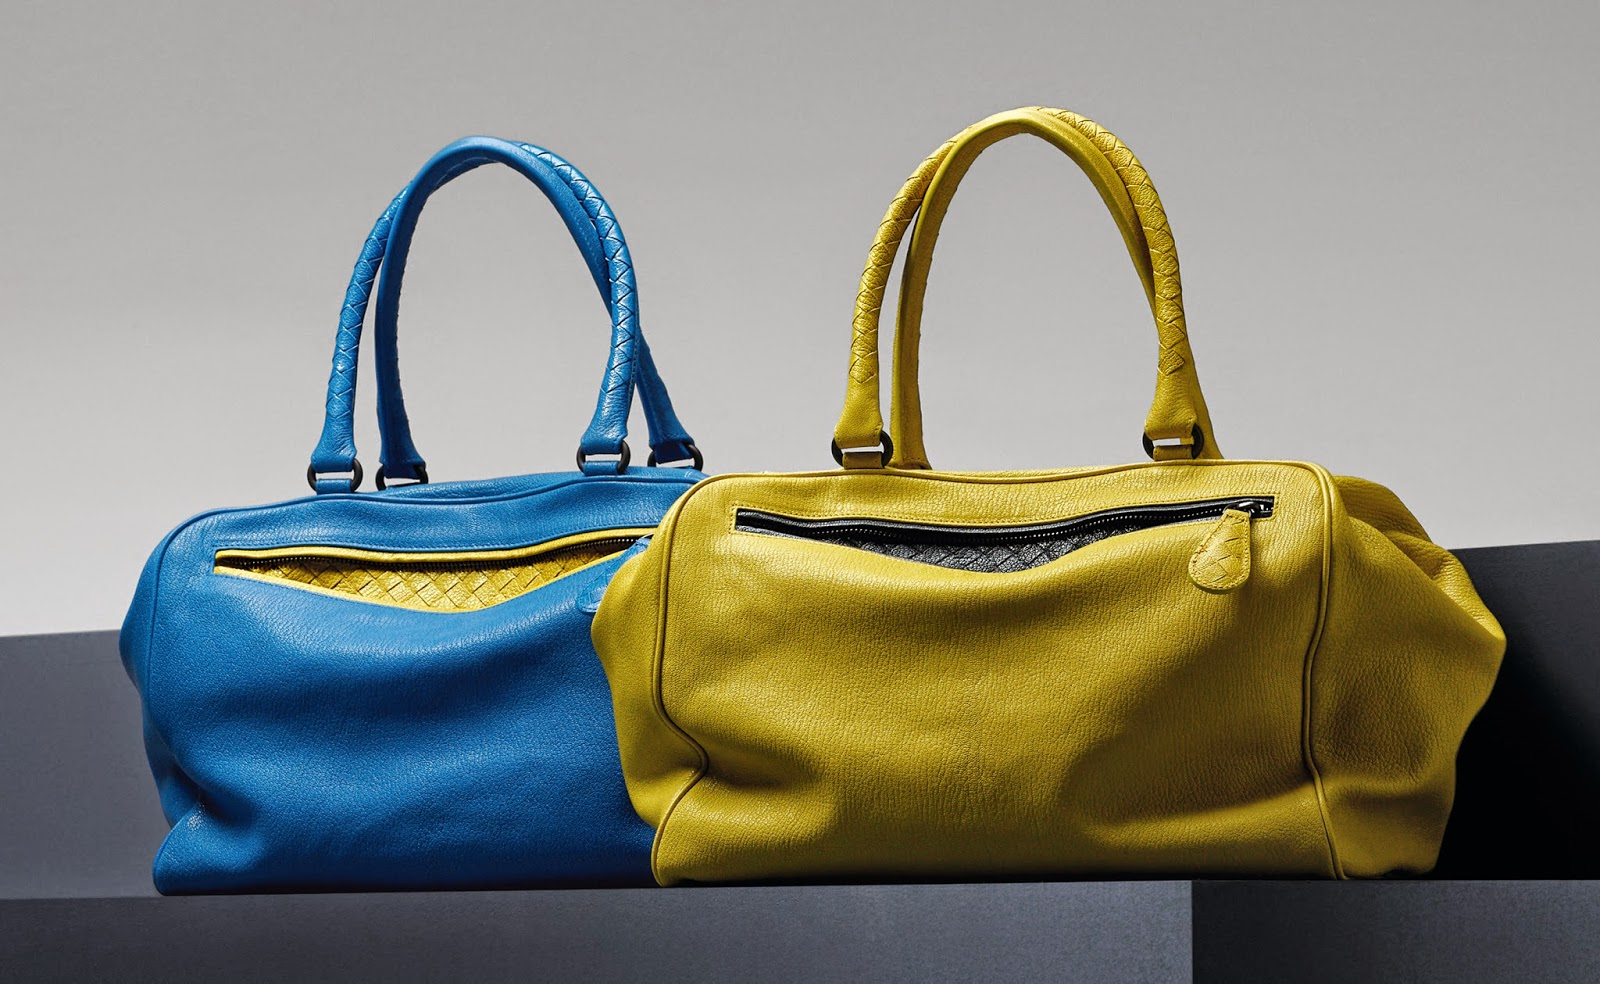 Bottega Veneta's New Madras Heritage Brera Bag